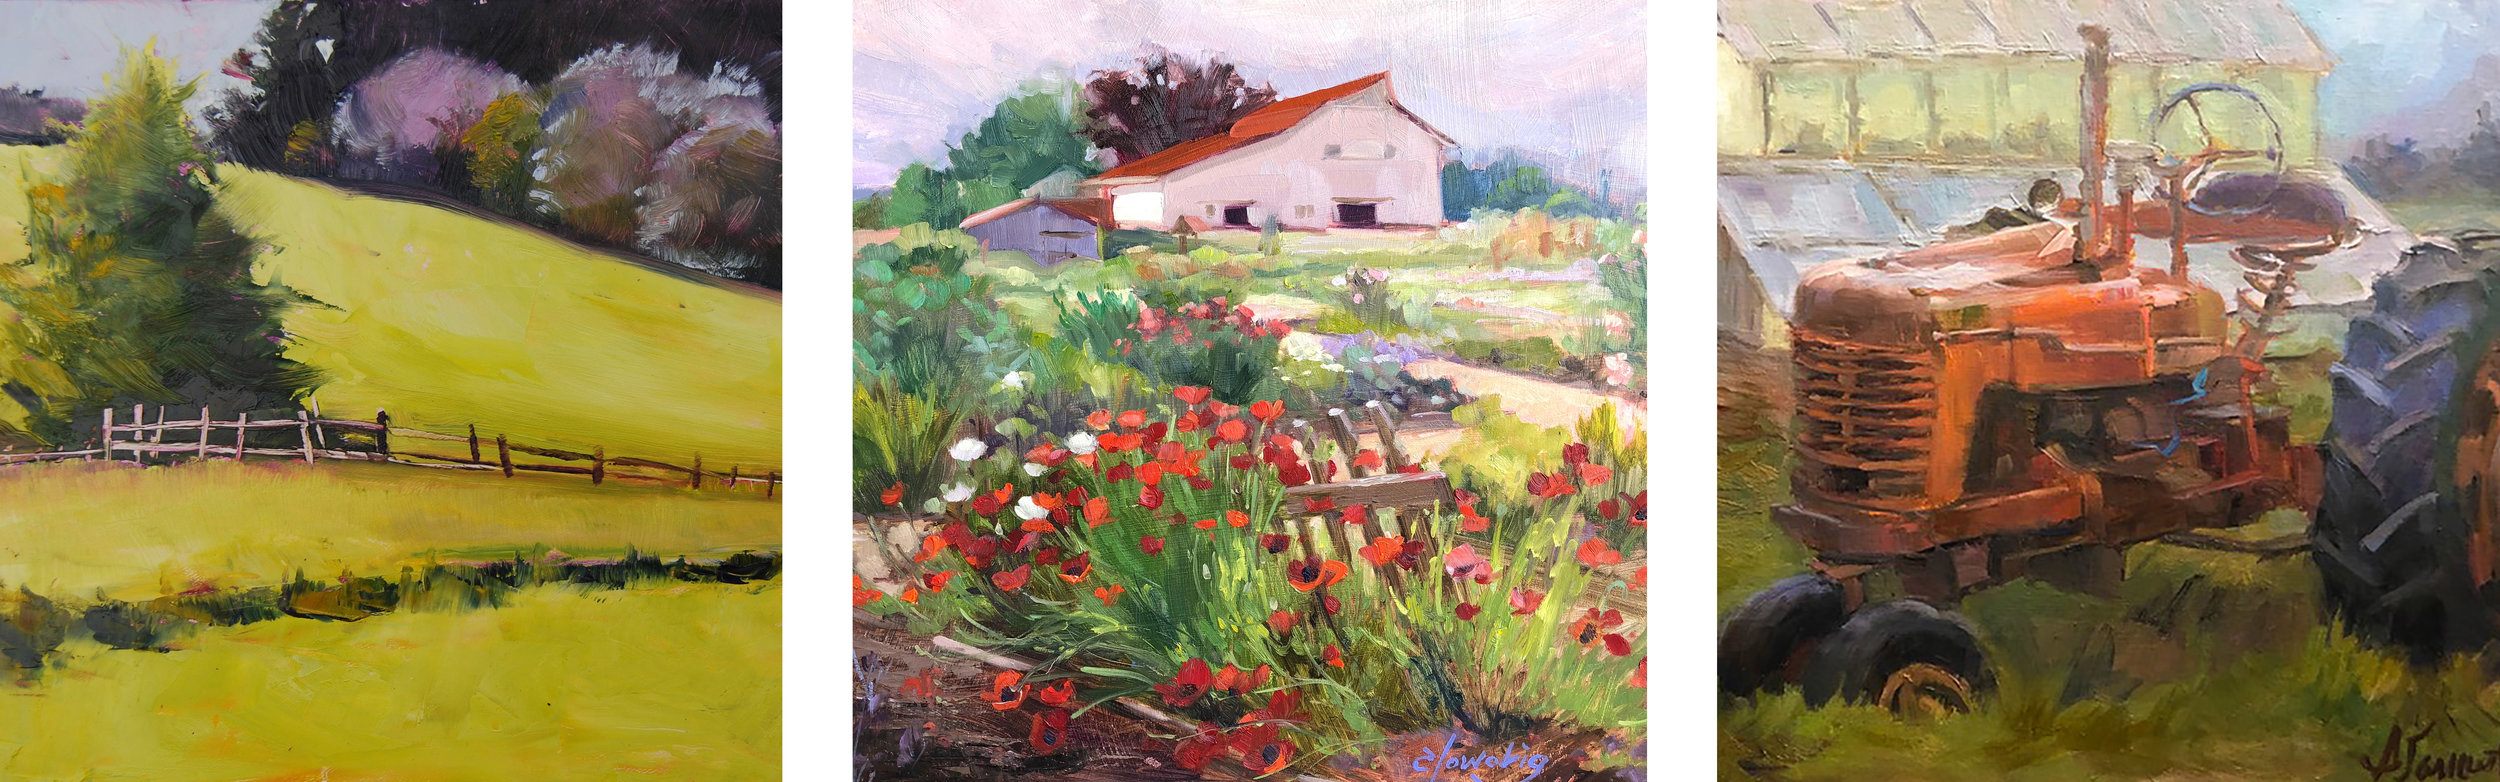 The Luscher property is inspiration for many artists whose works are exhibited at the Lake Oswego Arts Council's Chronicle Plein Air event every year.